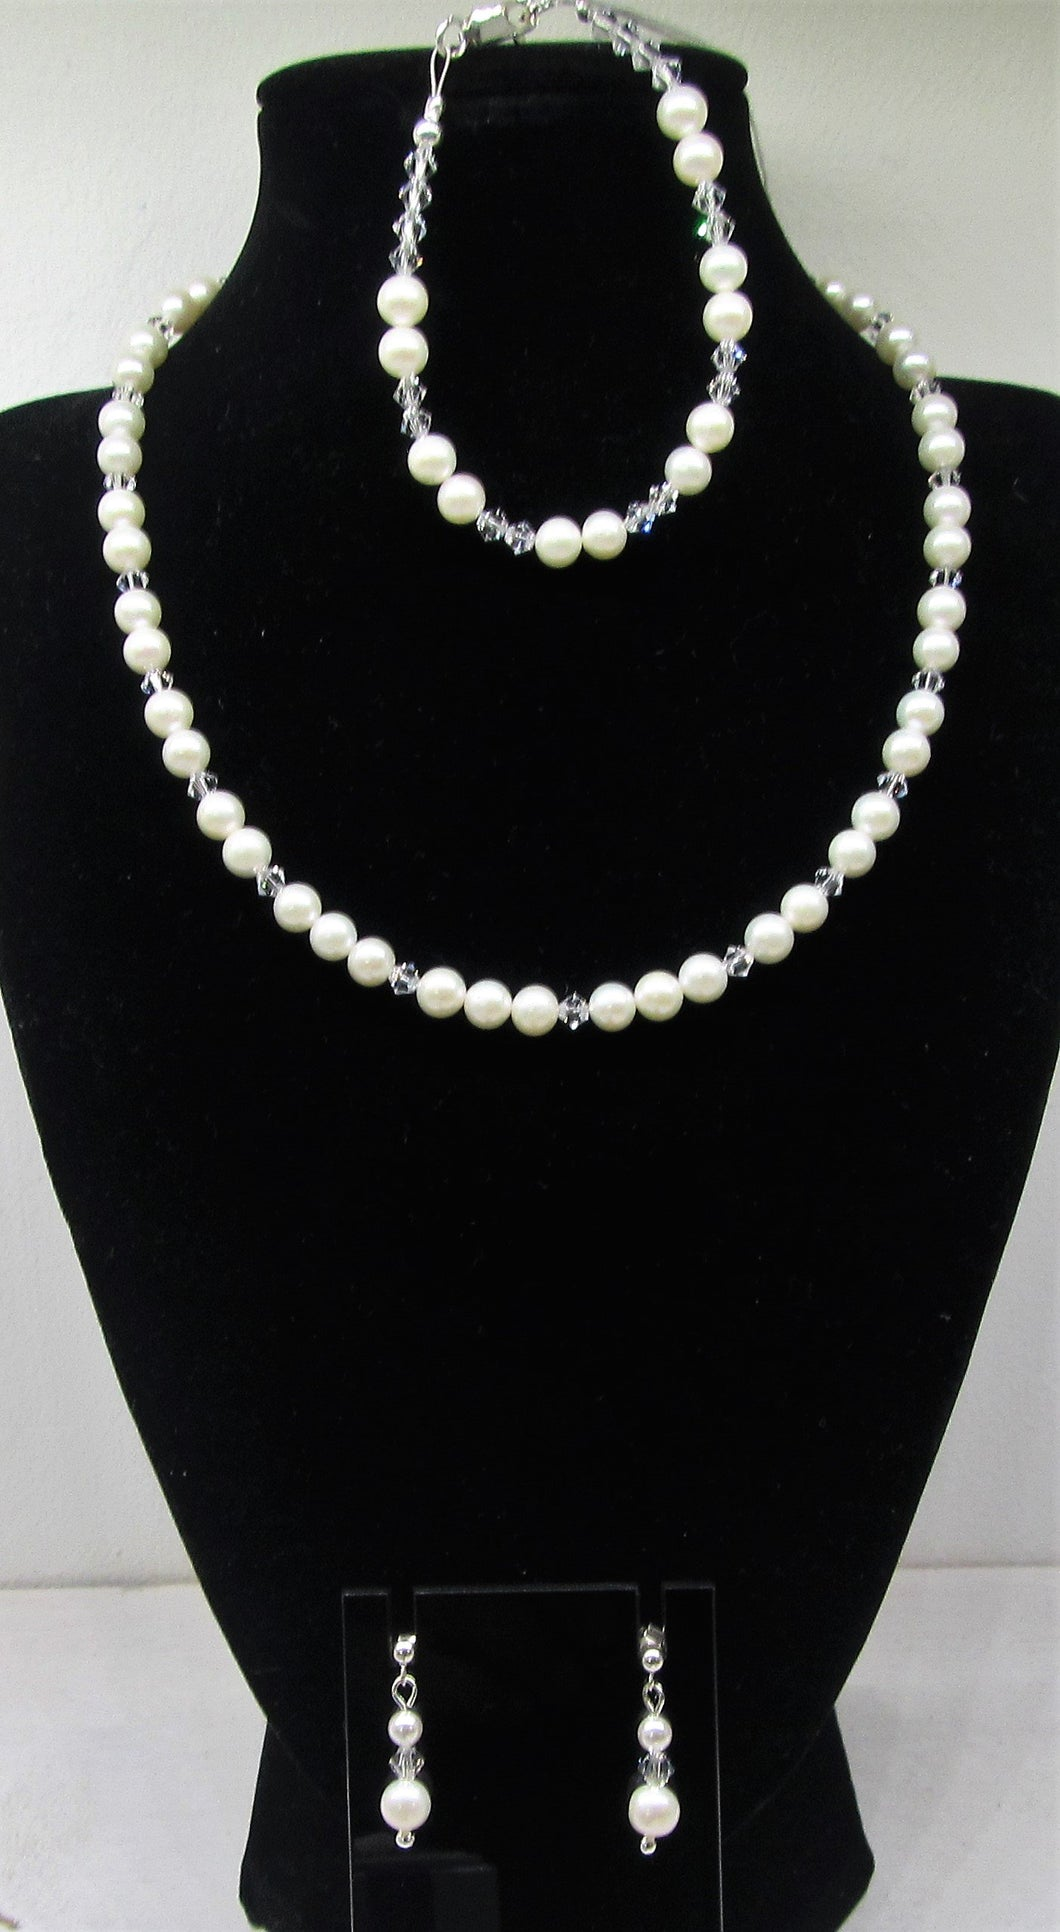 Handcrafted Swavoski crystal and pearl 3 piece jewellery set with 925 sterling silver findings